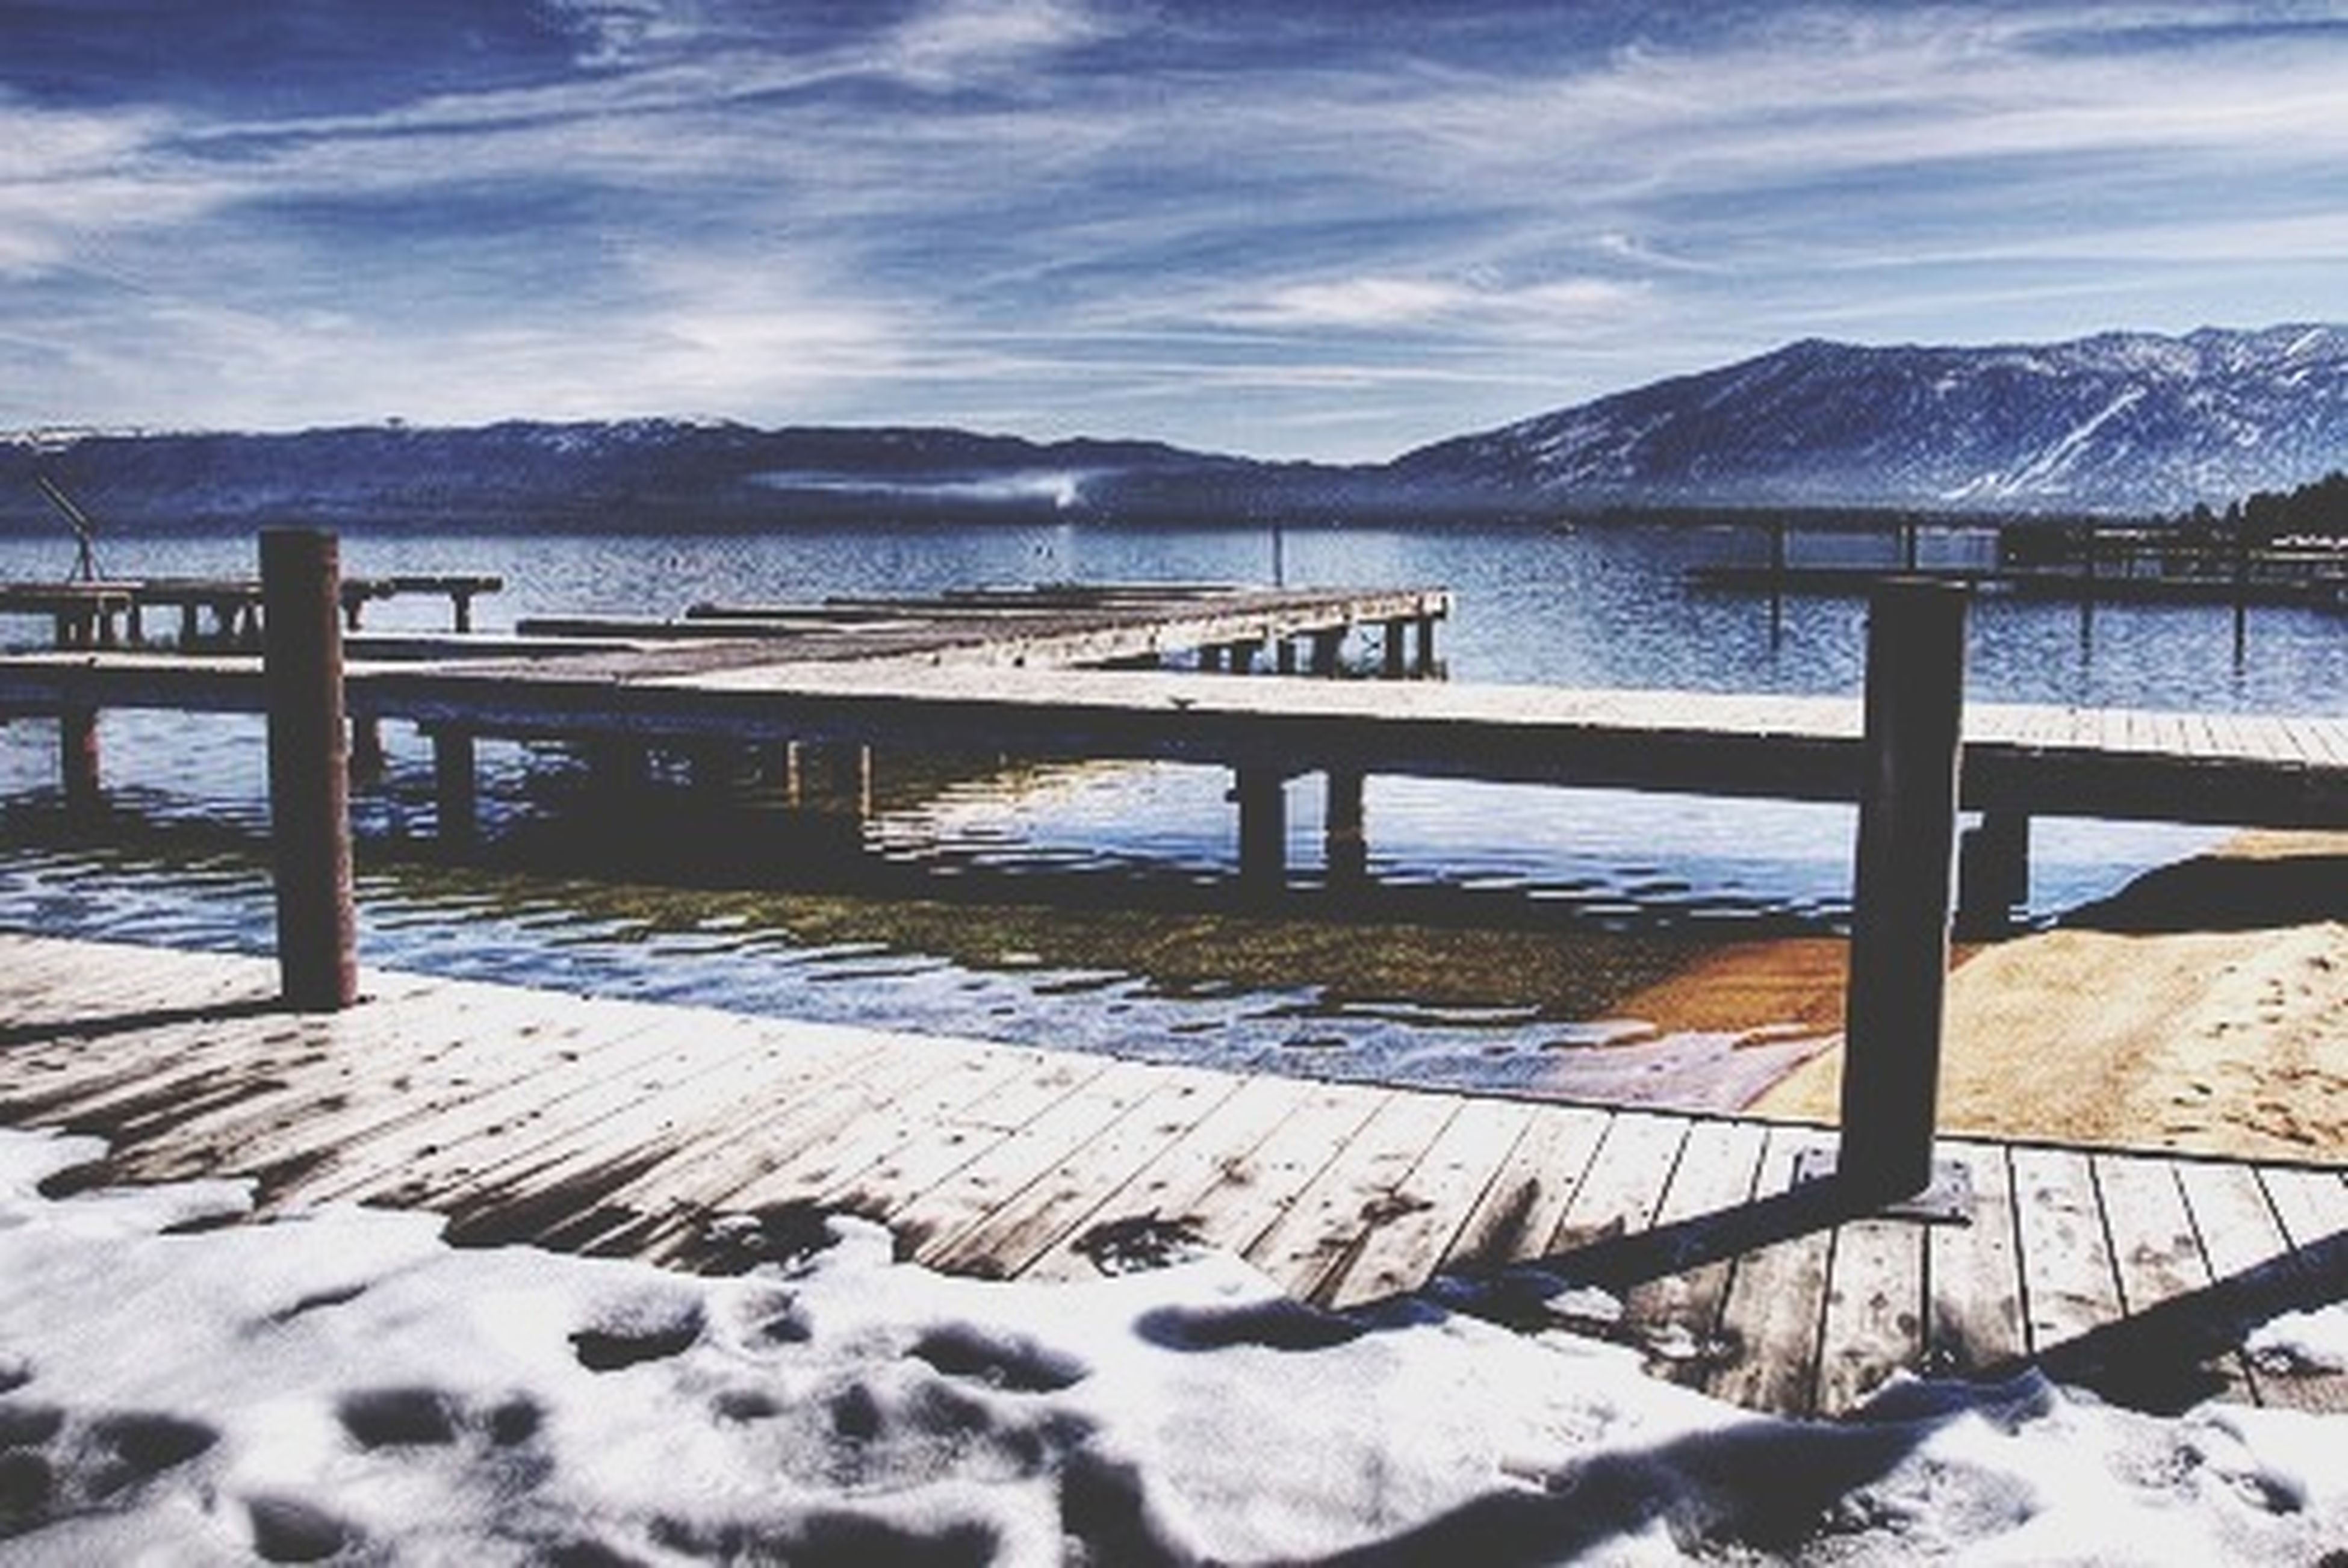 snow, winter, cold temperature, mountain, season, tranquil scene, weather, tranquility, scenics, mountain range, beauty in nature, frozen, sky, water, nature, lake, covering, wood - material, snowcapped mountain, white color